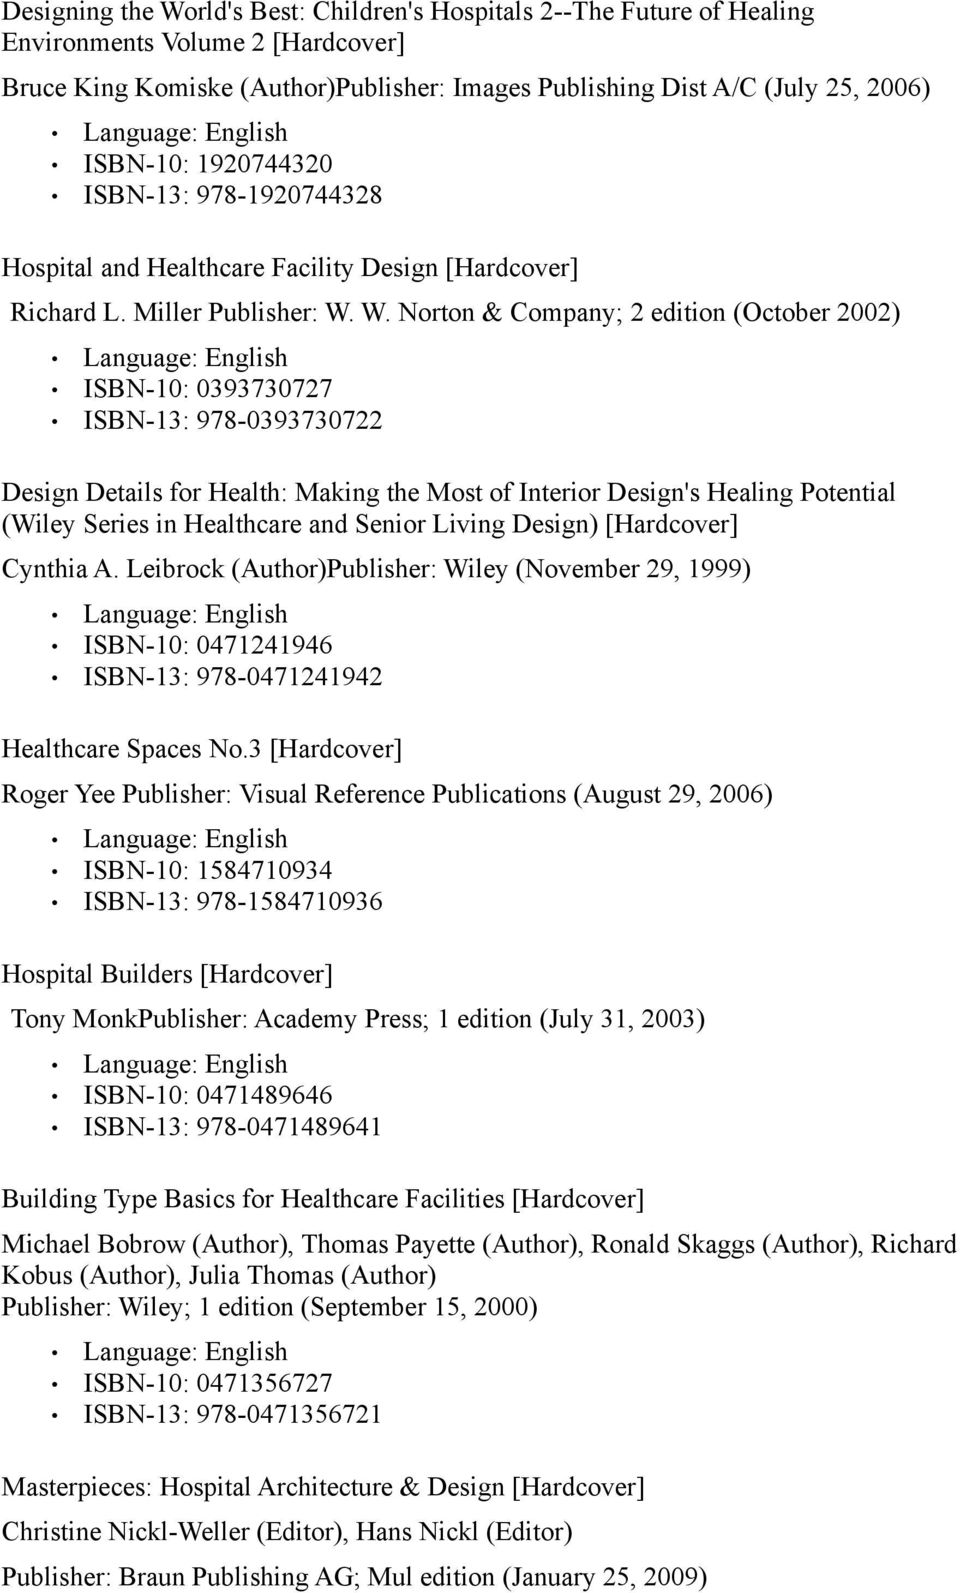 W. Norton & Company; 2 edition (October 2002) ISBN-10: 0393730727 ISBN-13: 978-0393730722 Design Details for Health: Making the Most of Interior Design's Healing Potential (Wiley Series in Healthcare